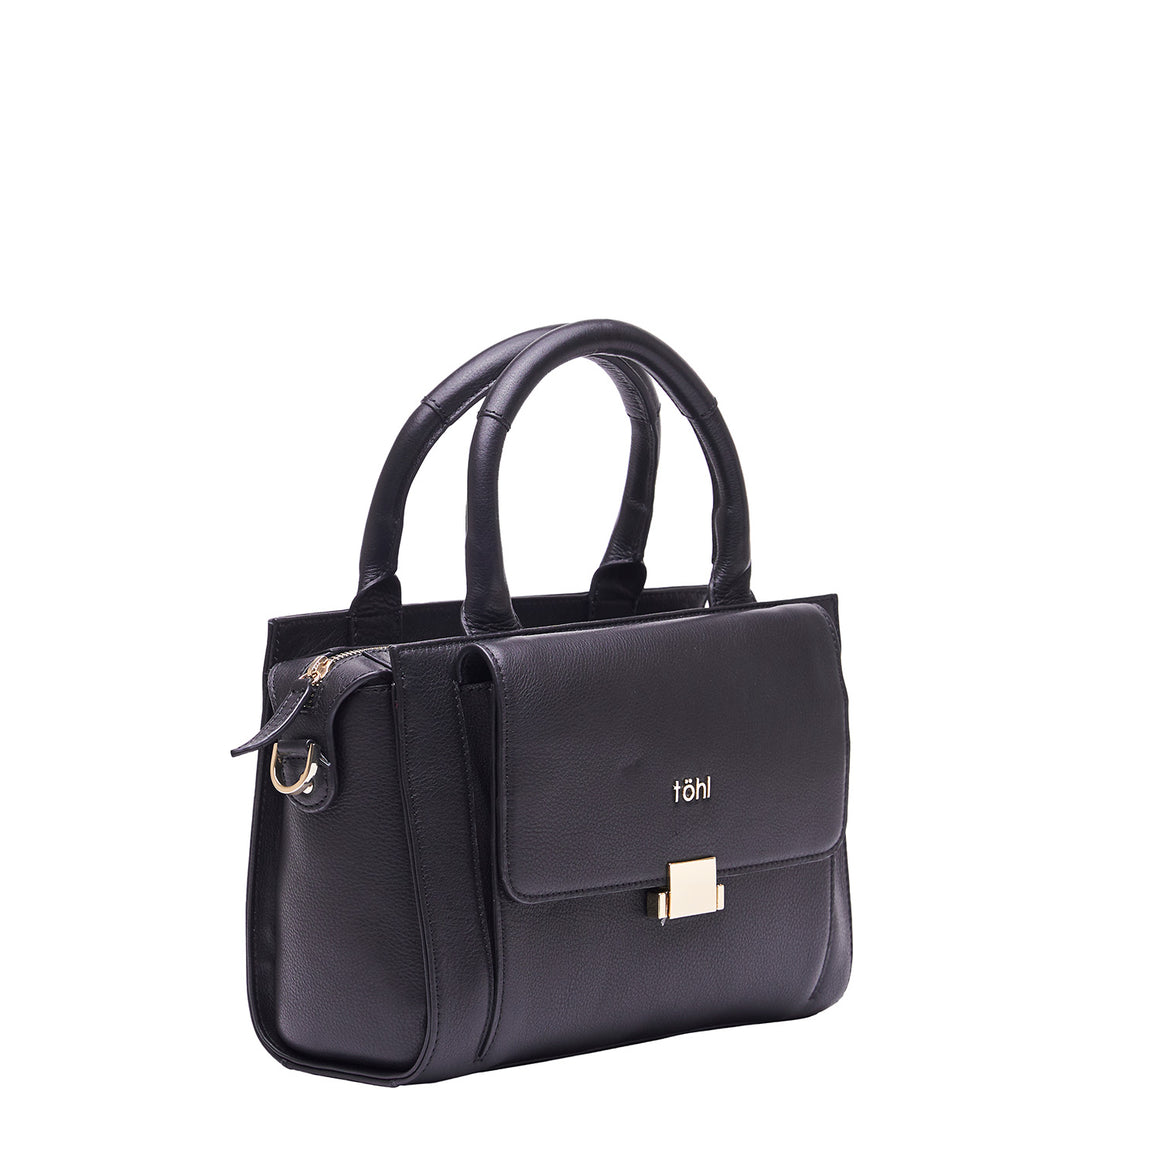 HH 0016 - TOHL CHISWELL WOMEN'S HAND BAG - CHARCOAL BLACK